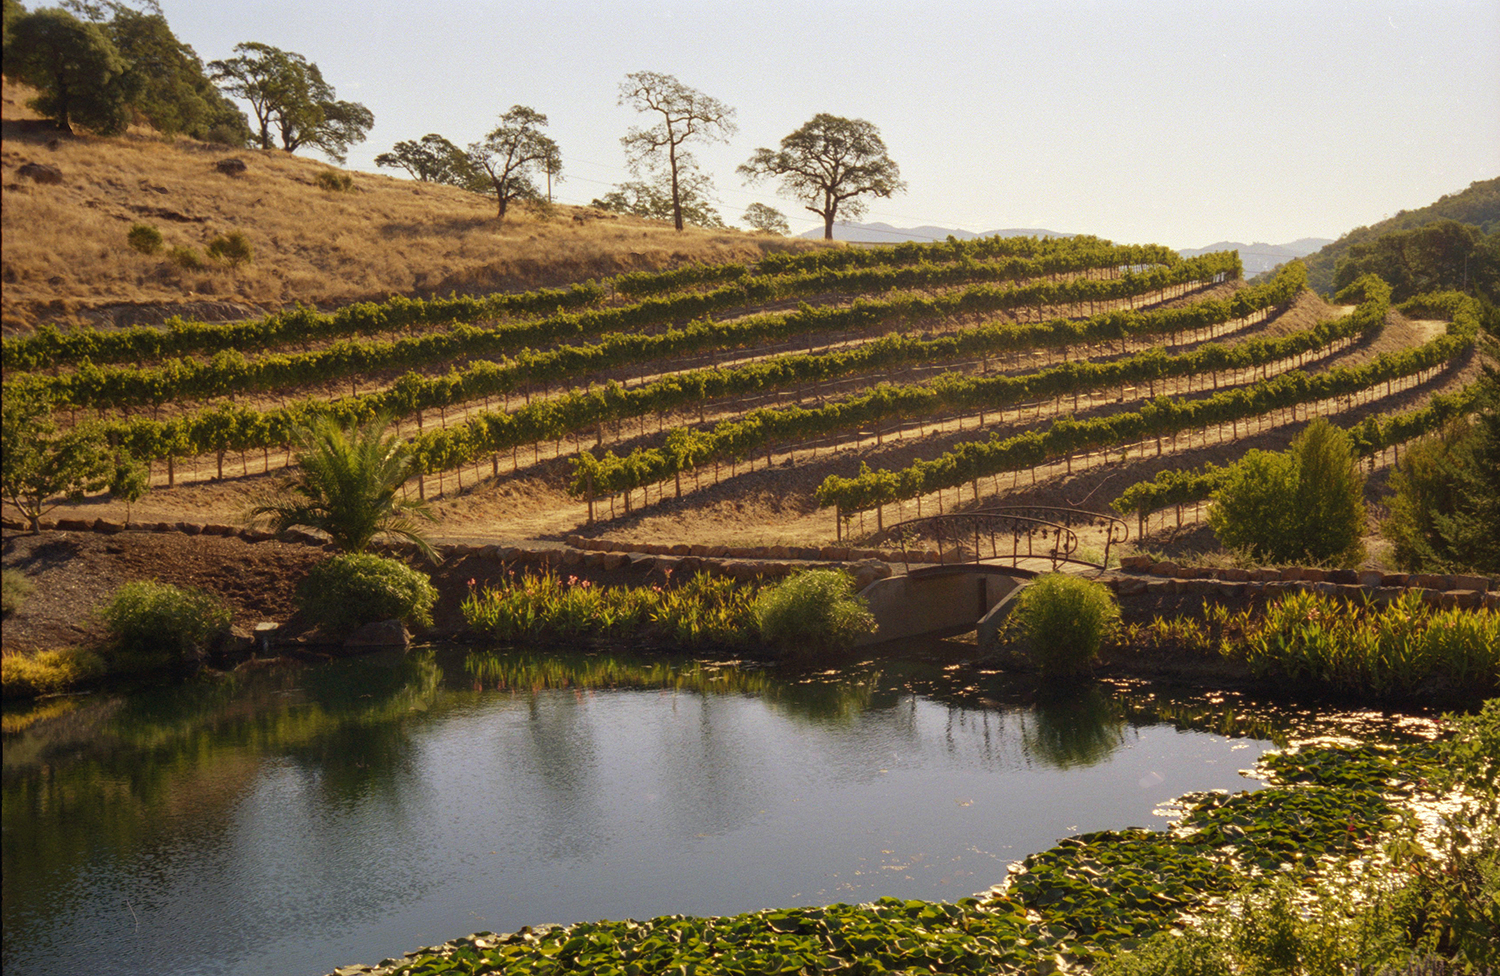 The Vineyards at Vine Cliff